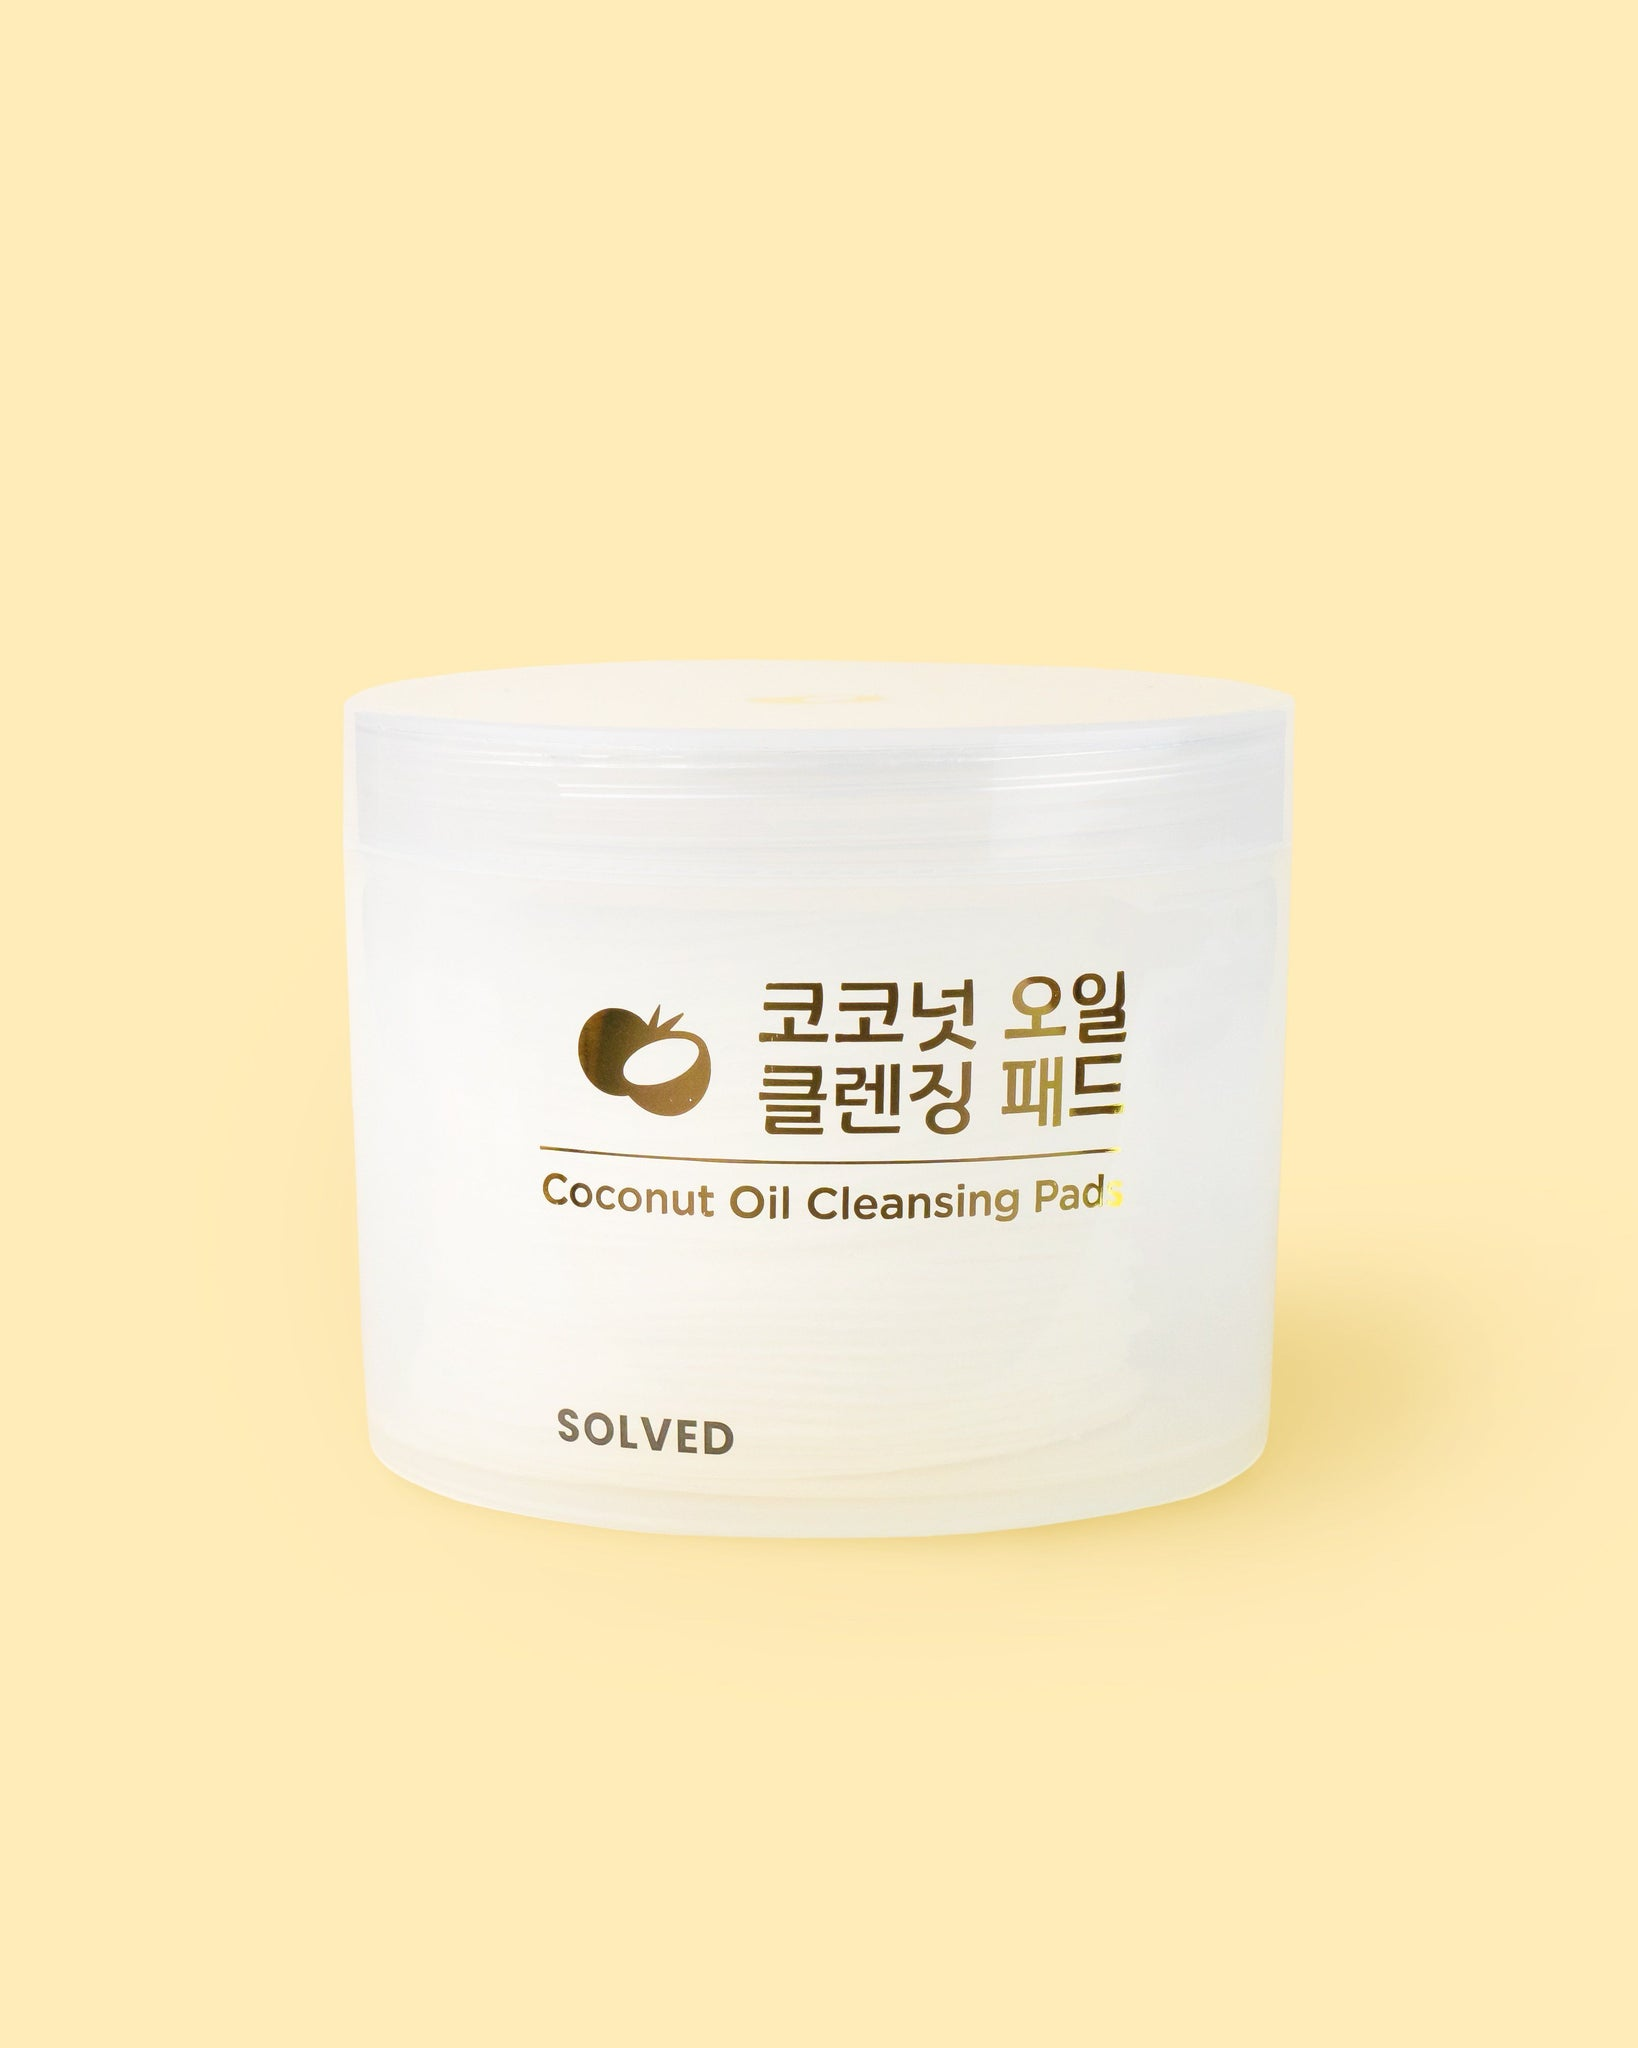 Coconut Oil Cleansing Pads Product